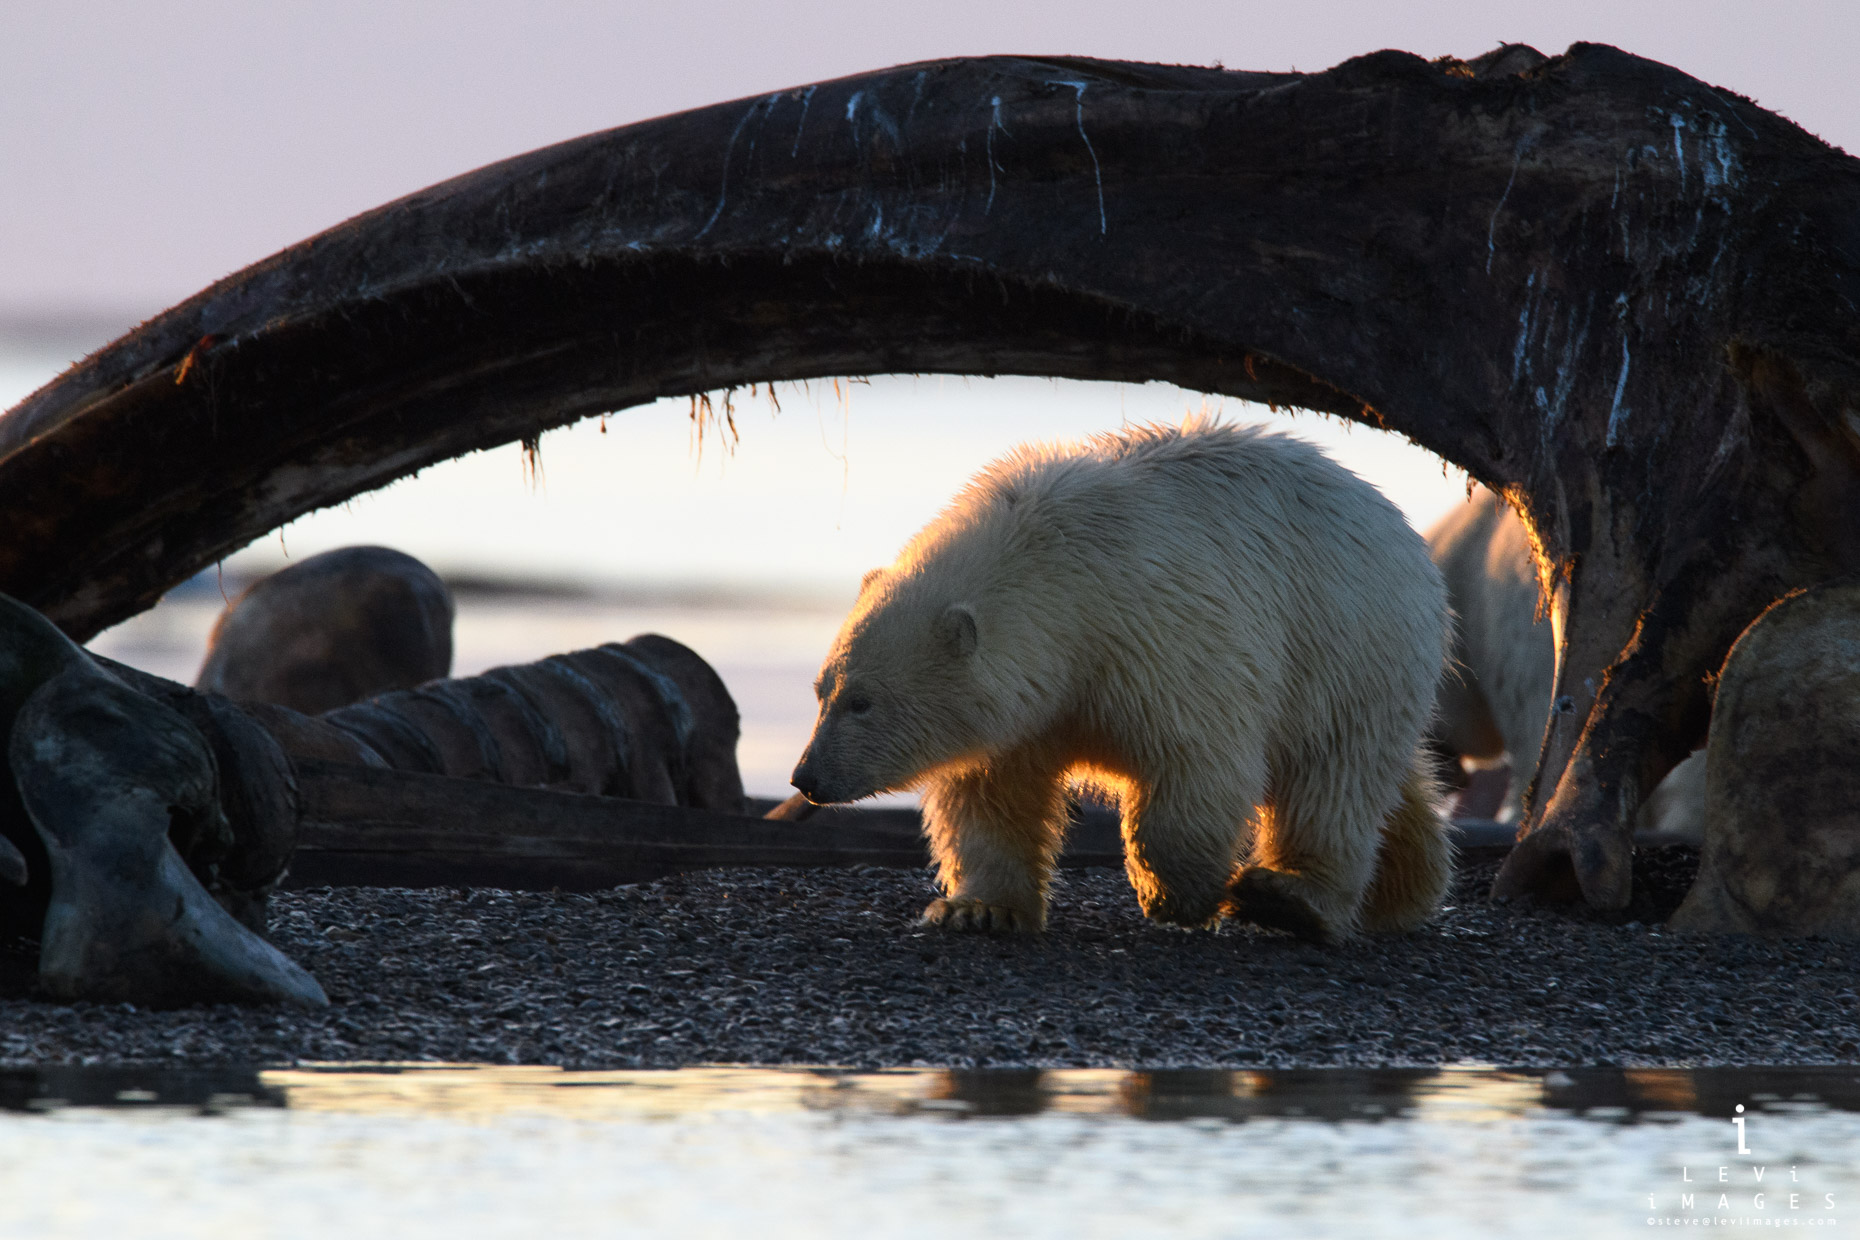 polar bear cub under whale bone Kaktovik Alaska